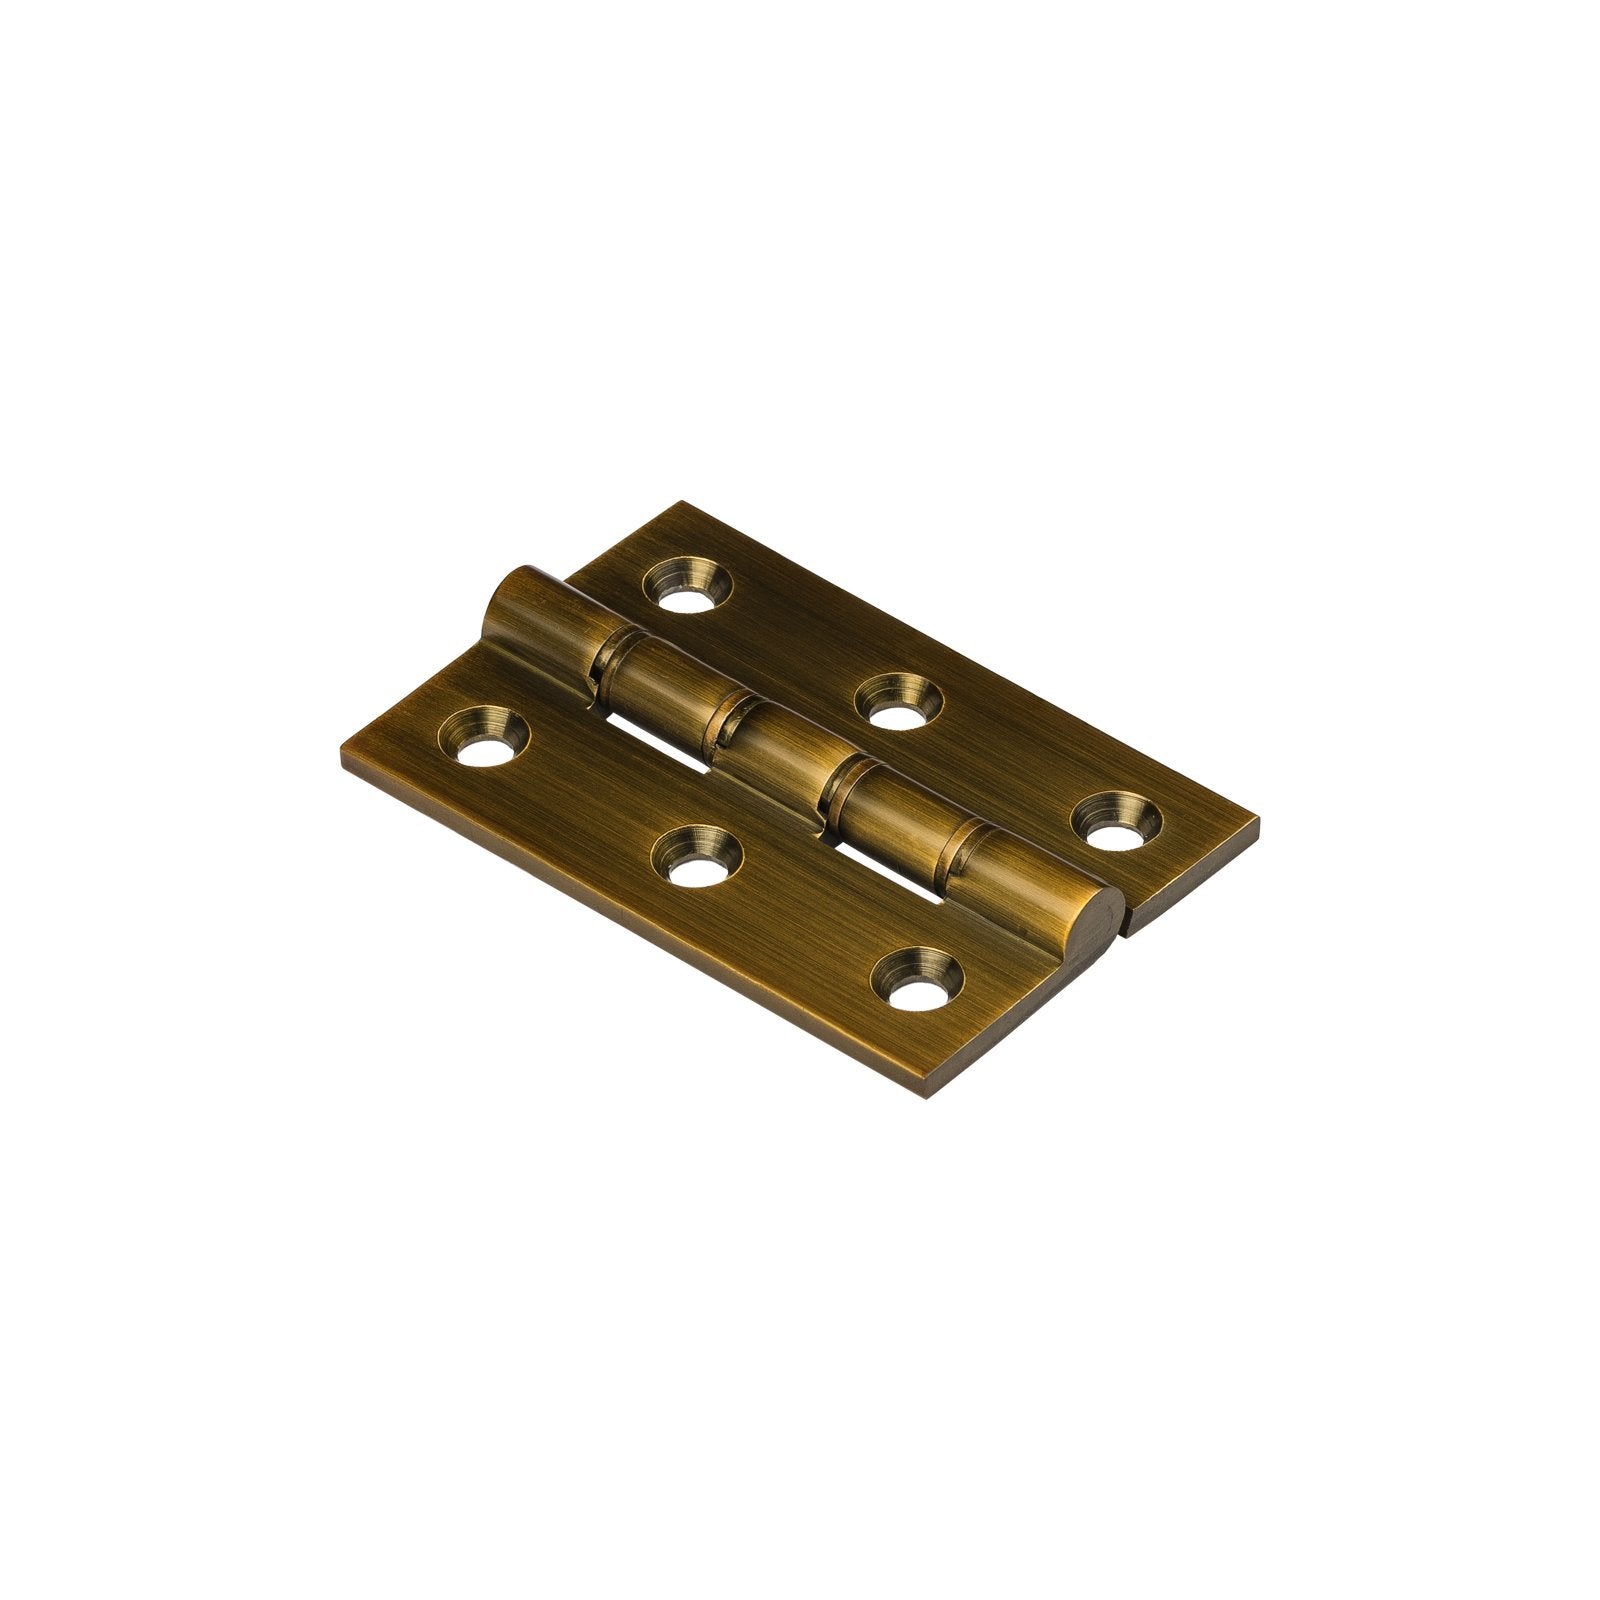 Solid Brass Butt Hinges, stainless steel butt hinges, door butt hinge, heavy duty butt hinges